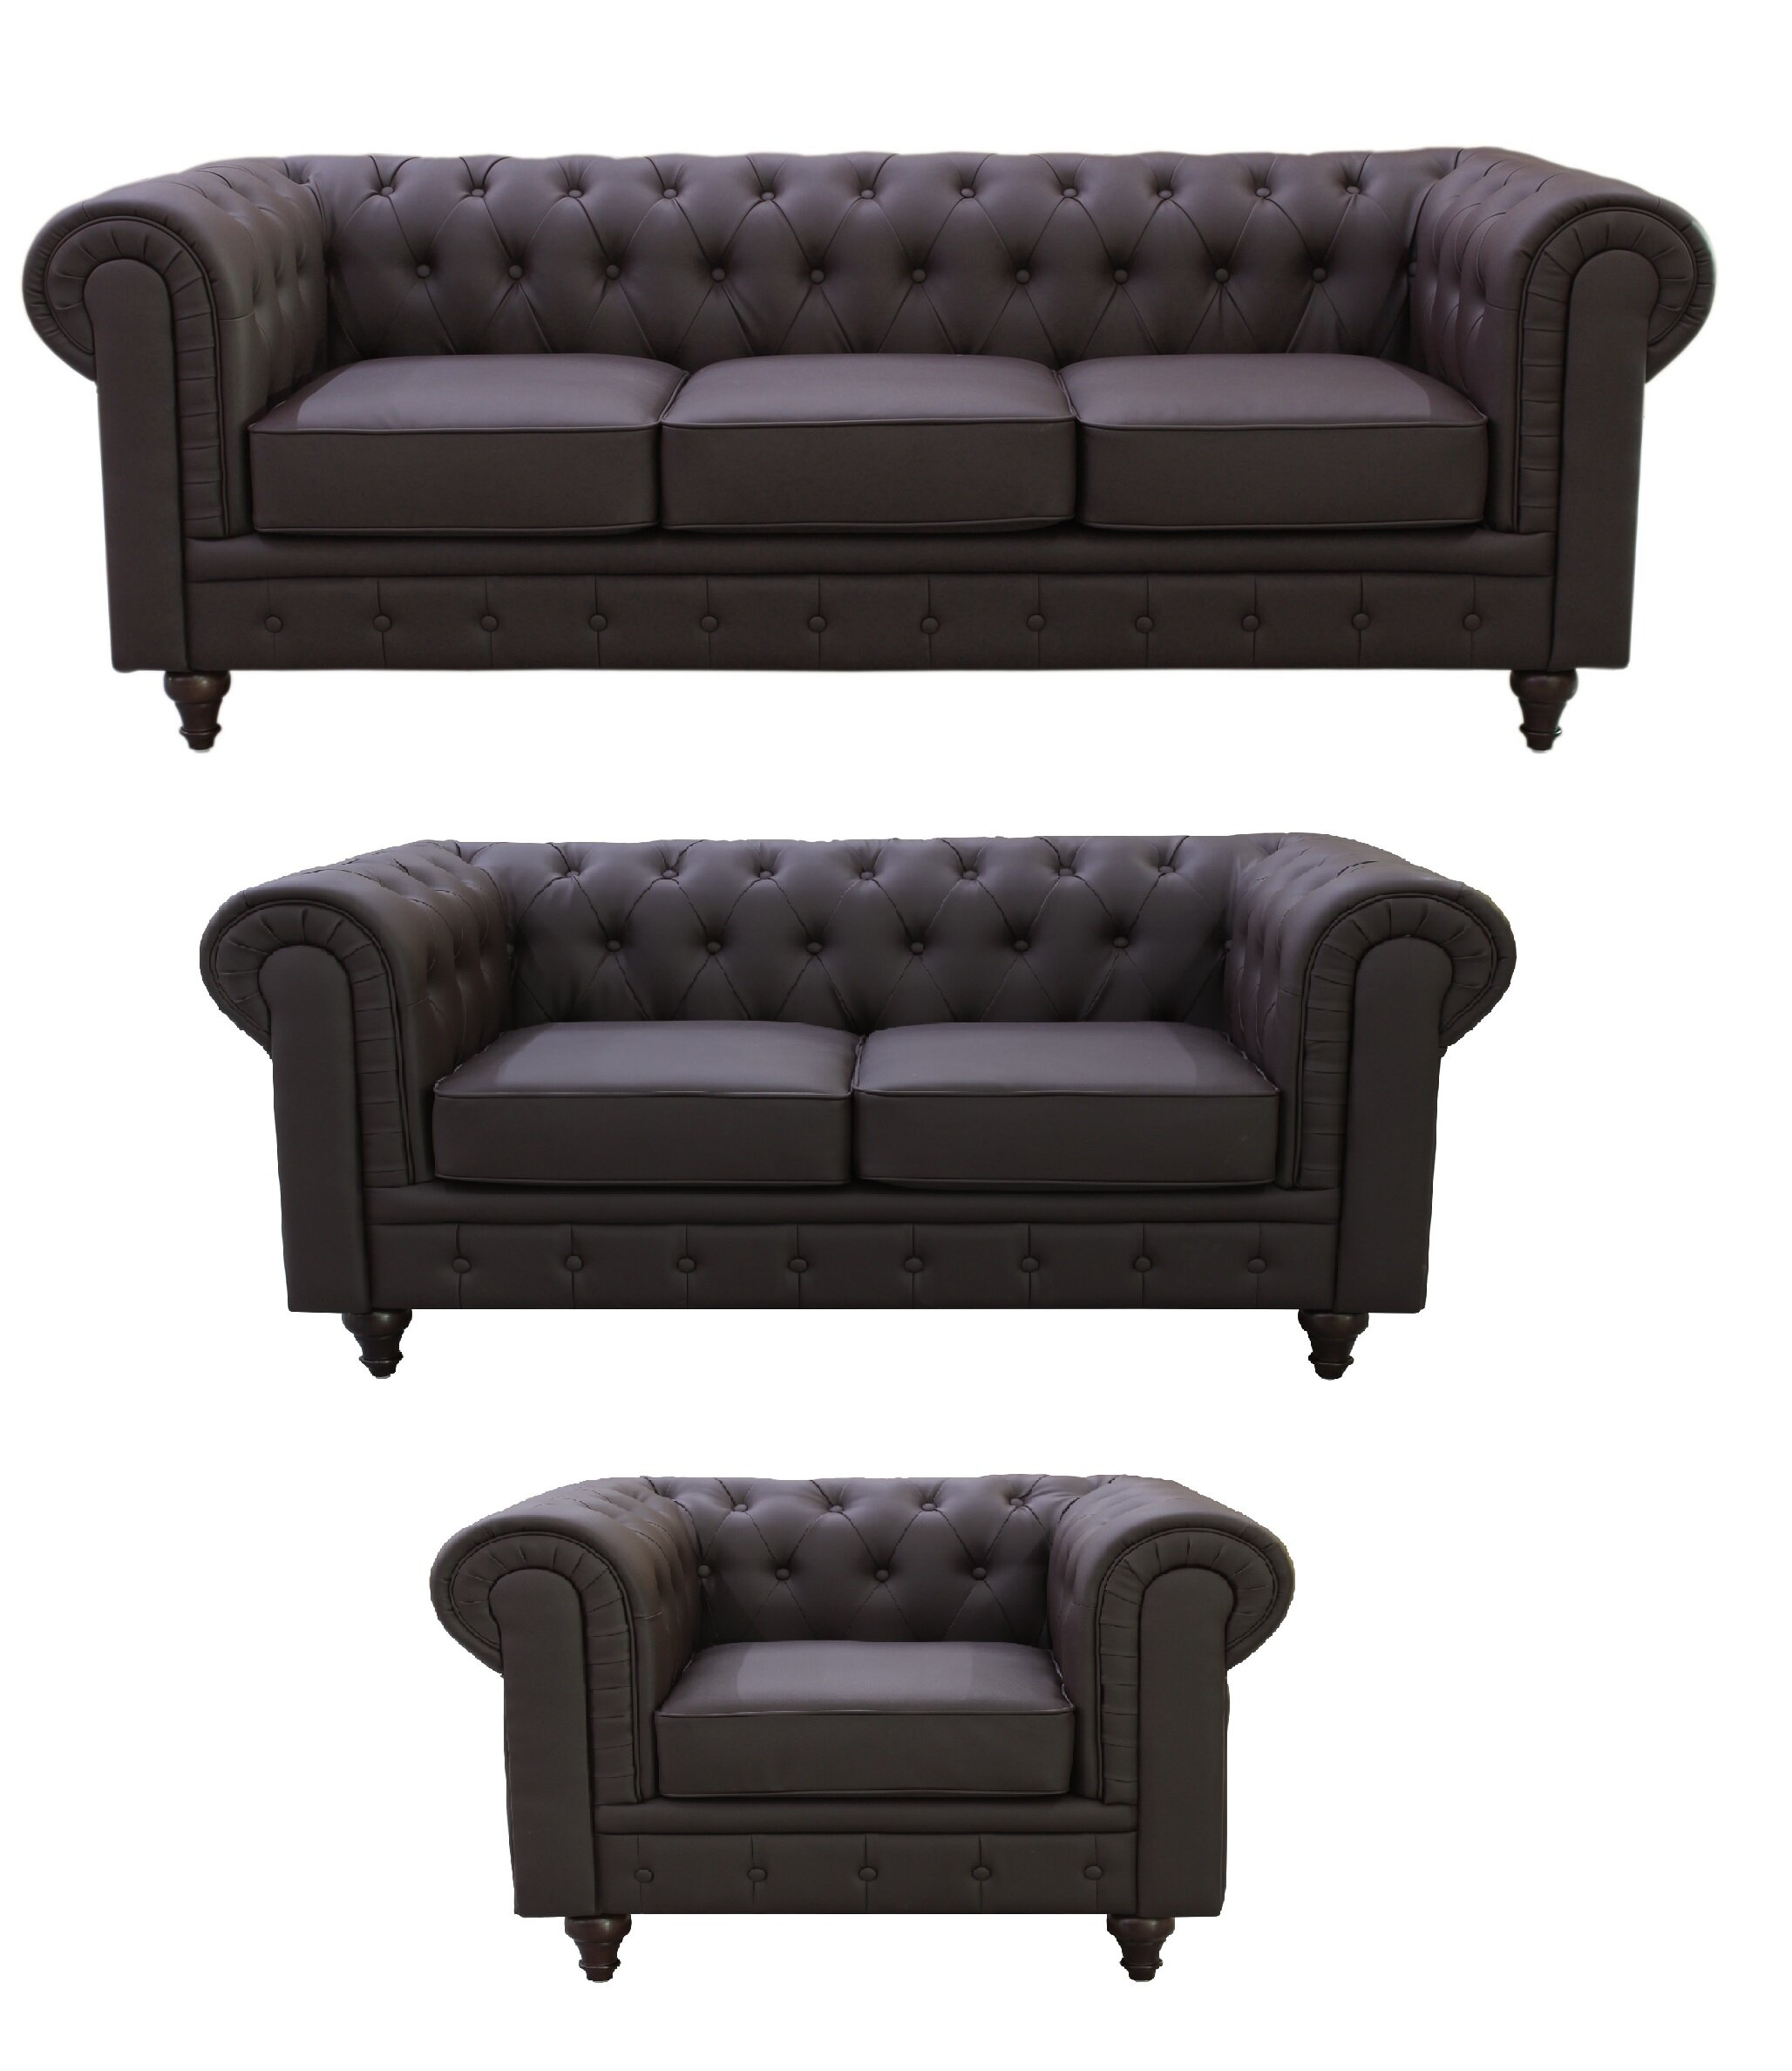 Container Chesterfield 3 Piece Living Room Set Reviews Wayfair